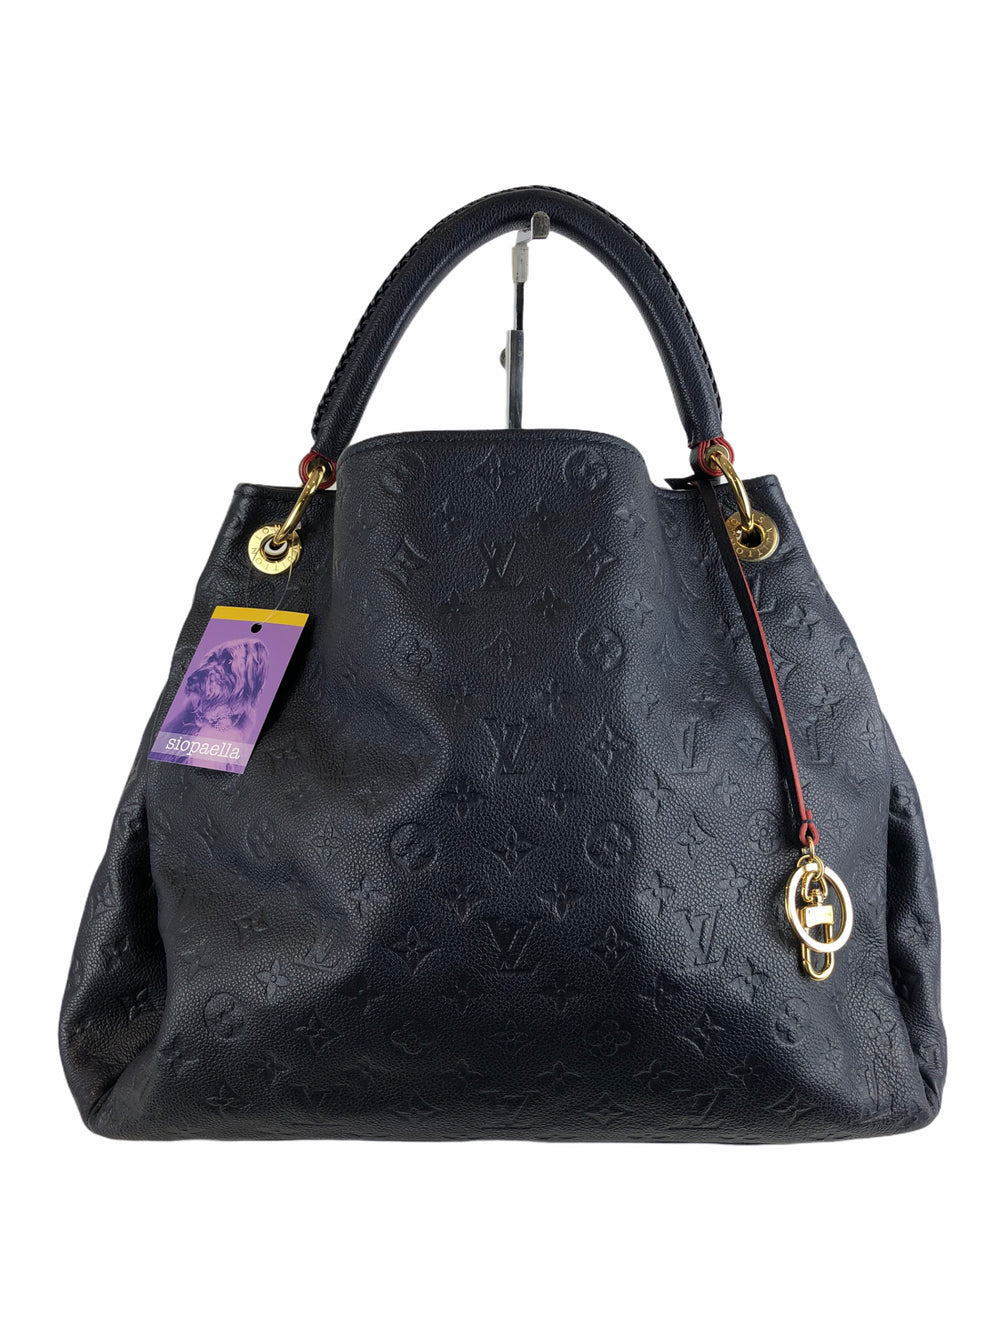 Louis Vuitton Navy Empreinte Leather 'Artsy' GM Hobo